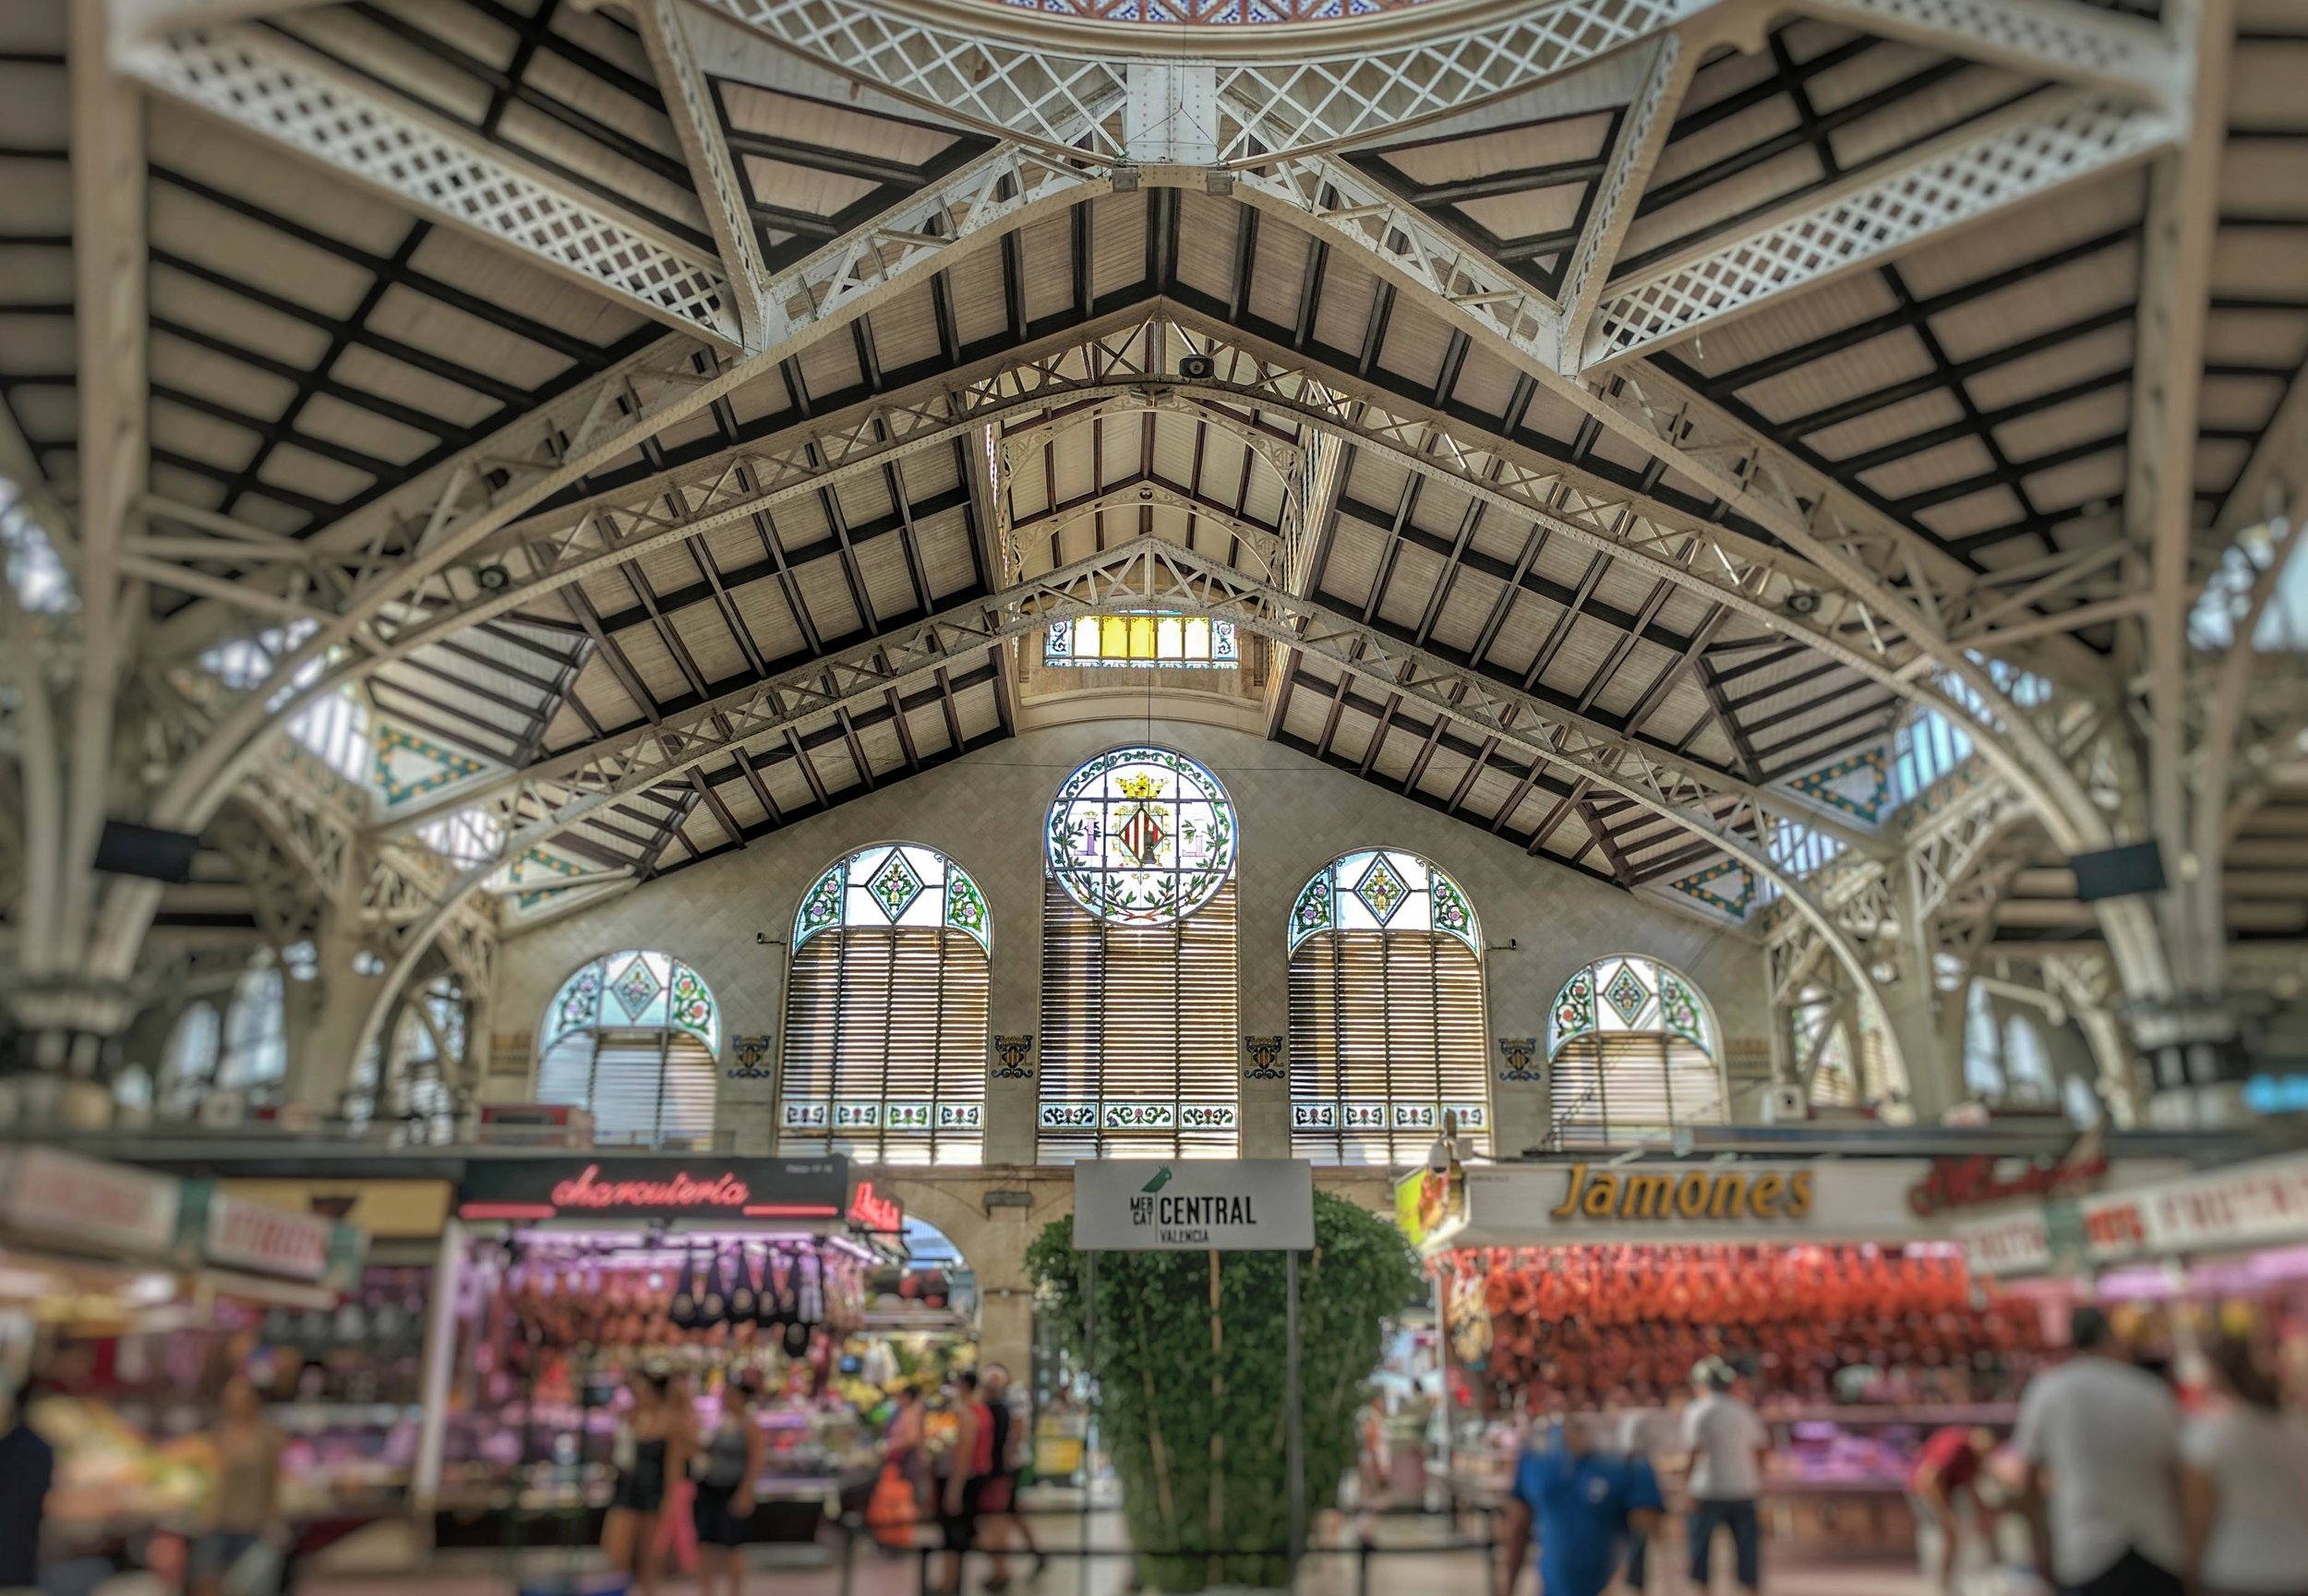 The incredible and immense Mercat Central